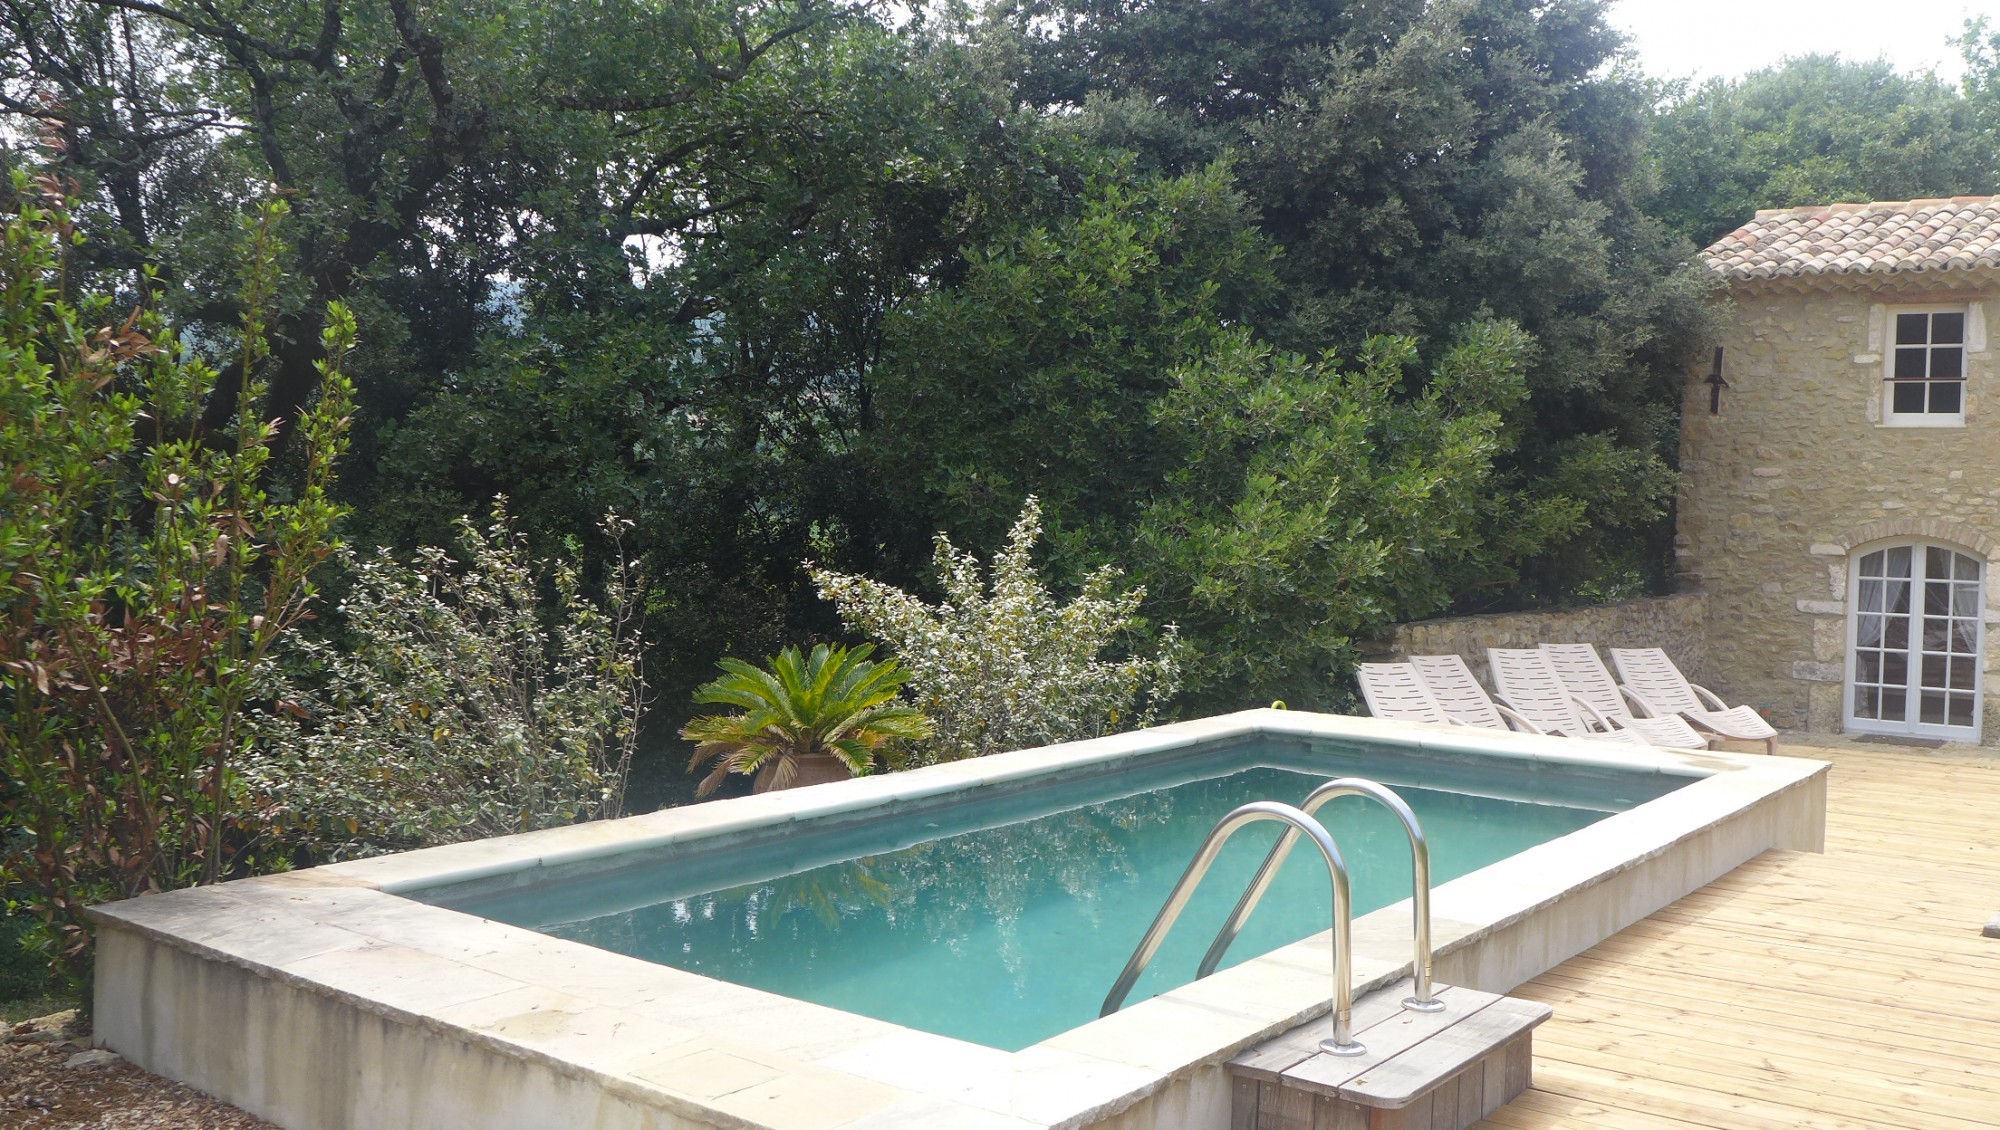 Ardeche Location Maison Avec Piscine Of Location Drome Provencale Locations Maison De Vacances